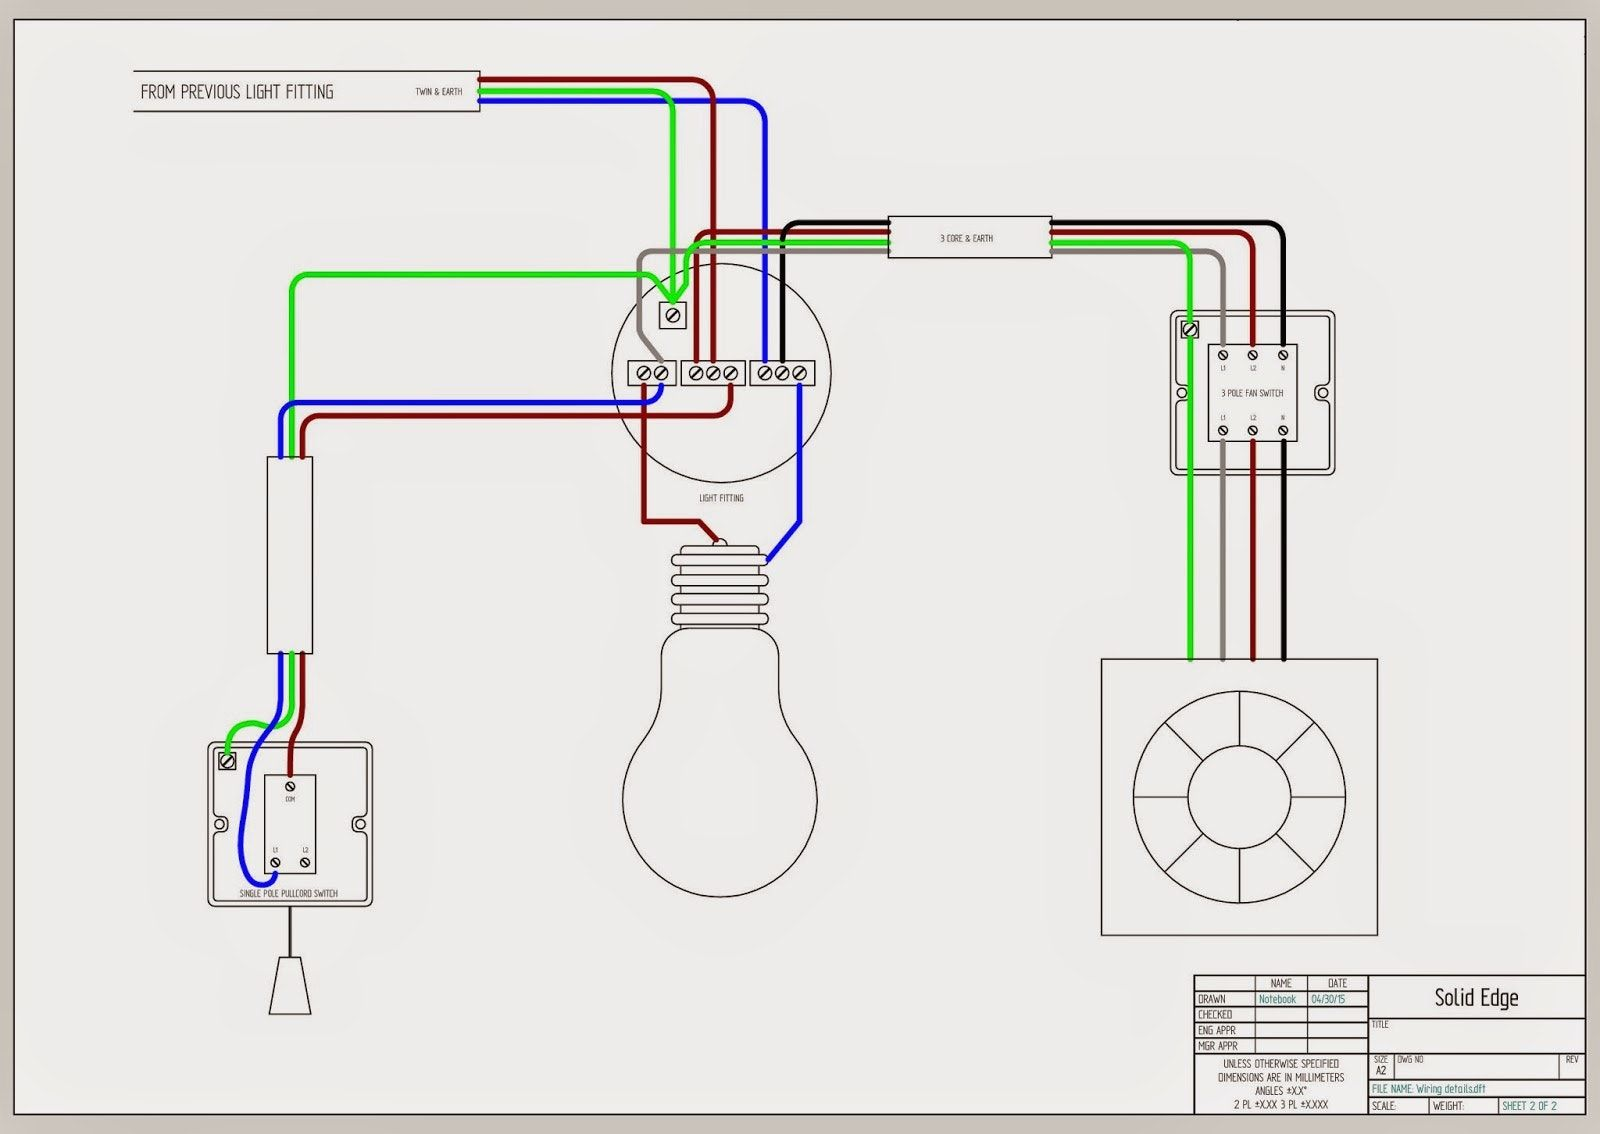 hight resolution of image result for fan isolator switch wiring diagram